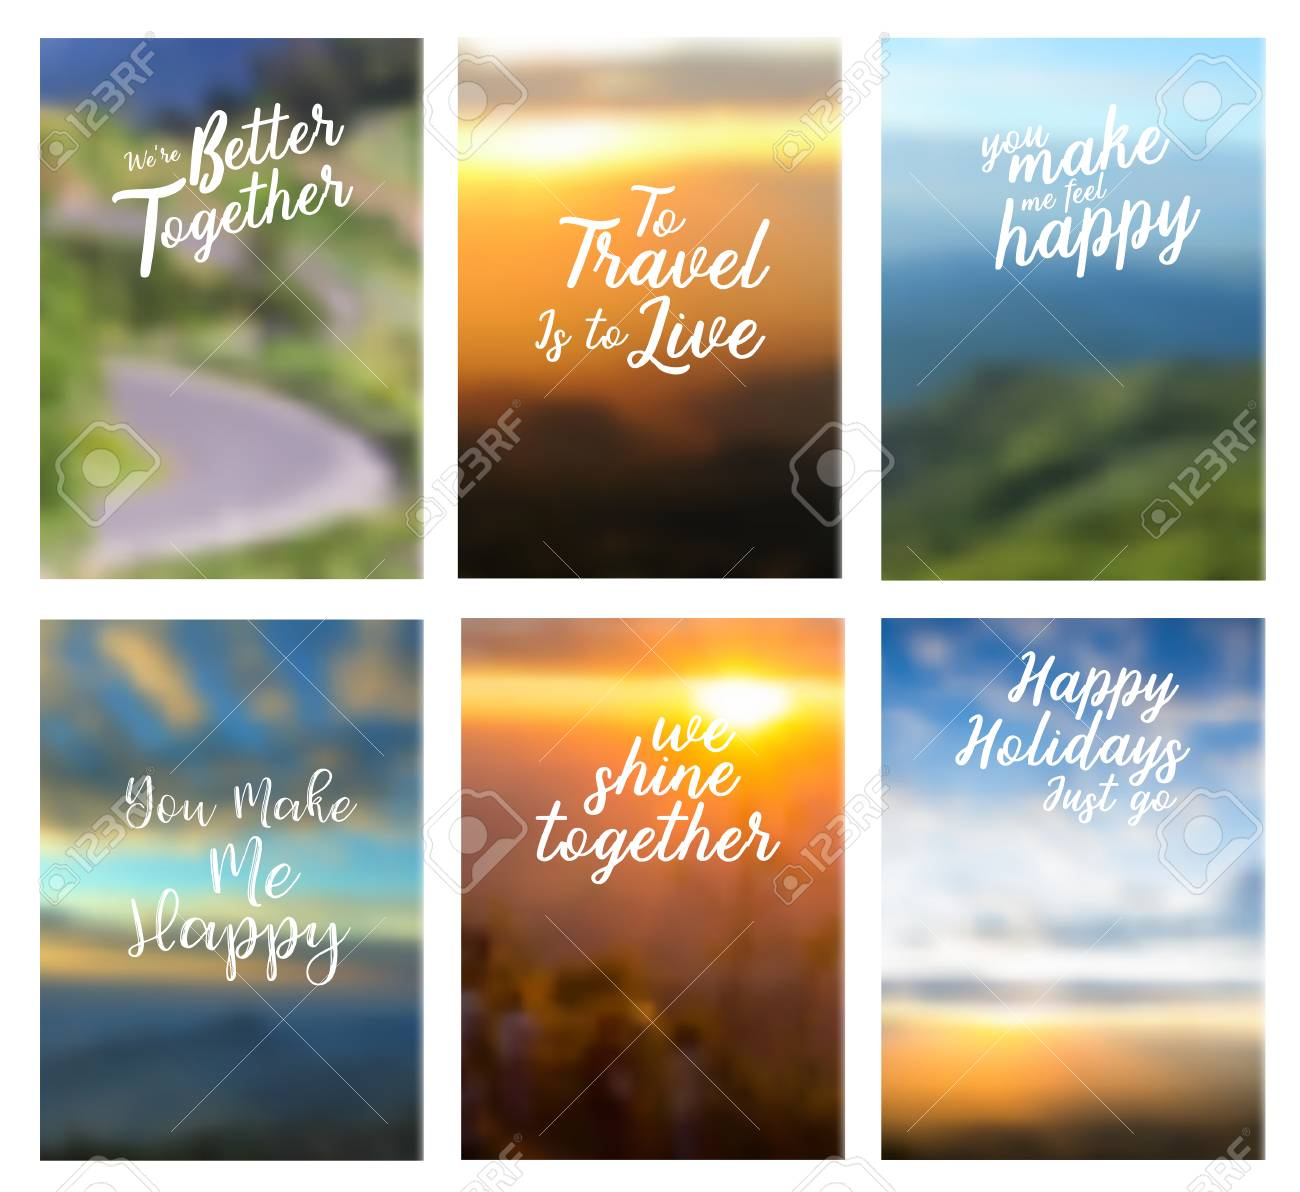 Positive Quotes Better Together To Travel Is To Live You Make